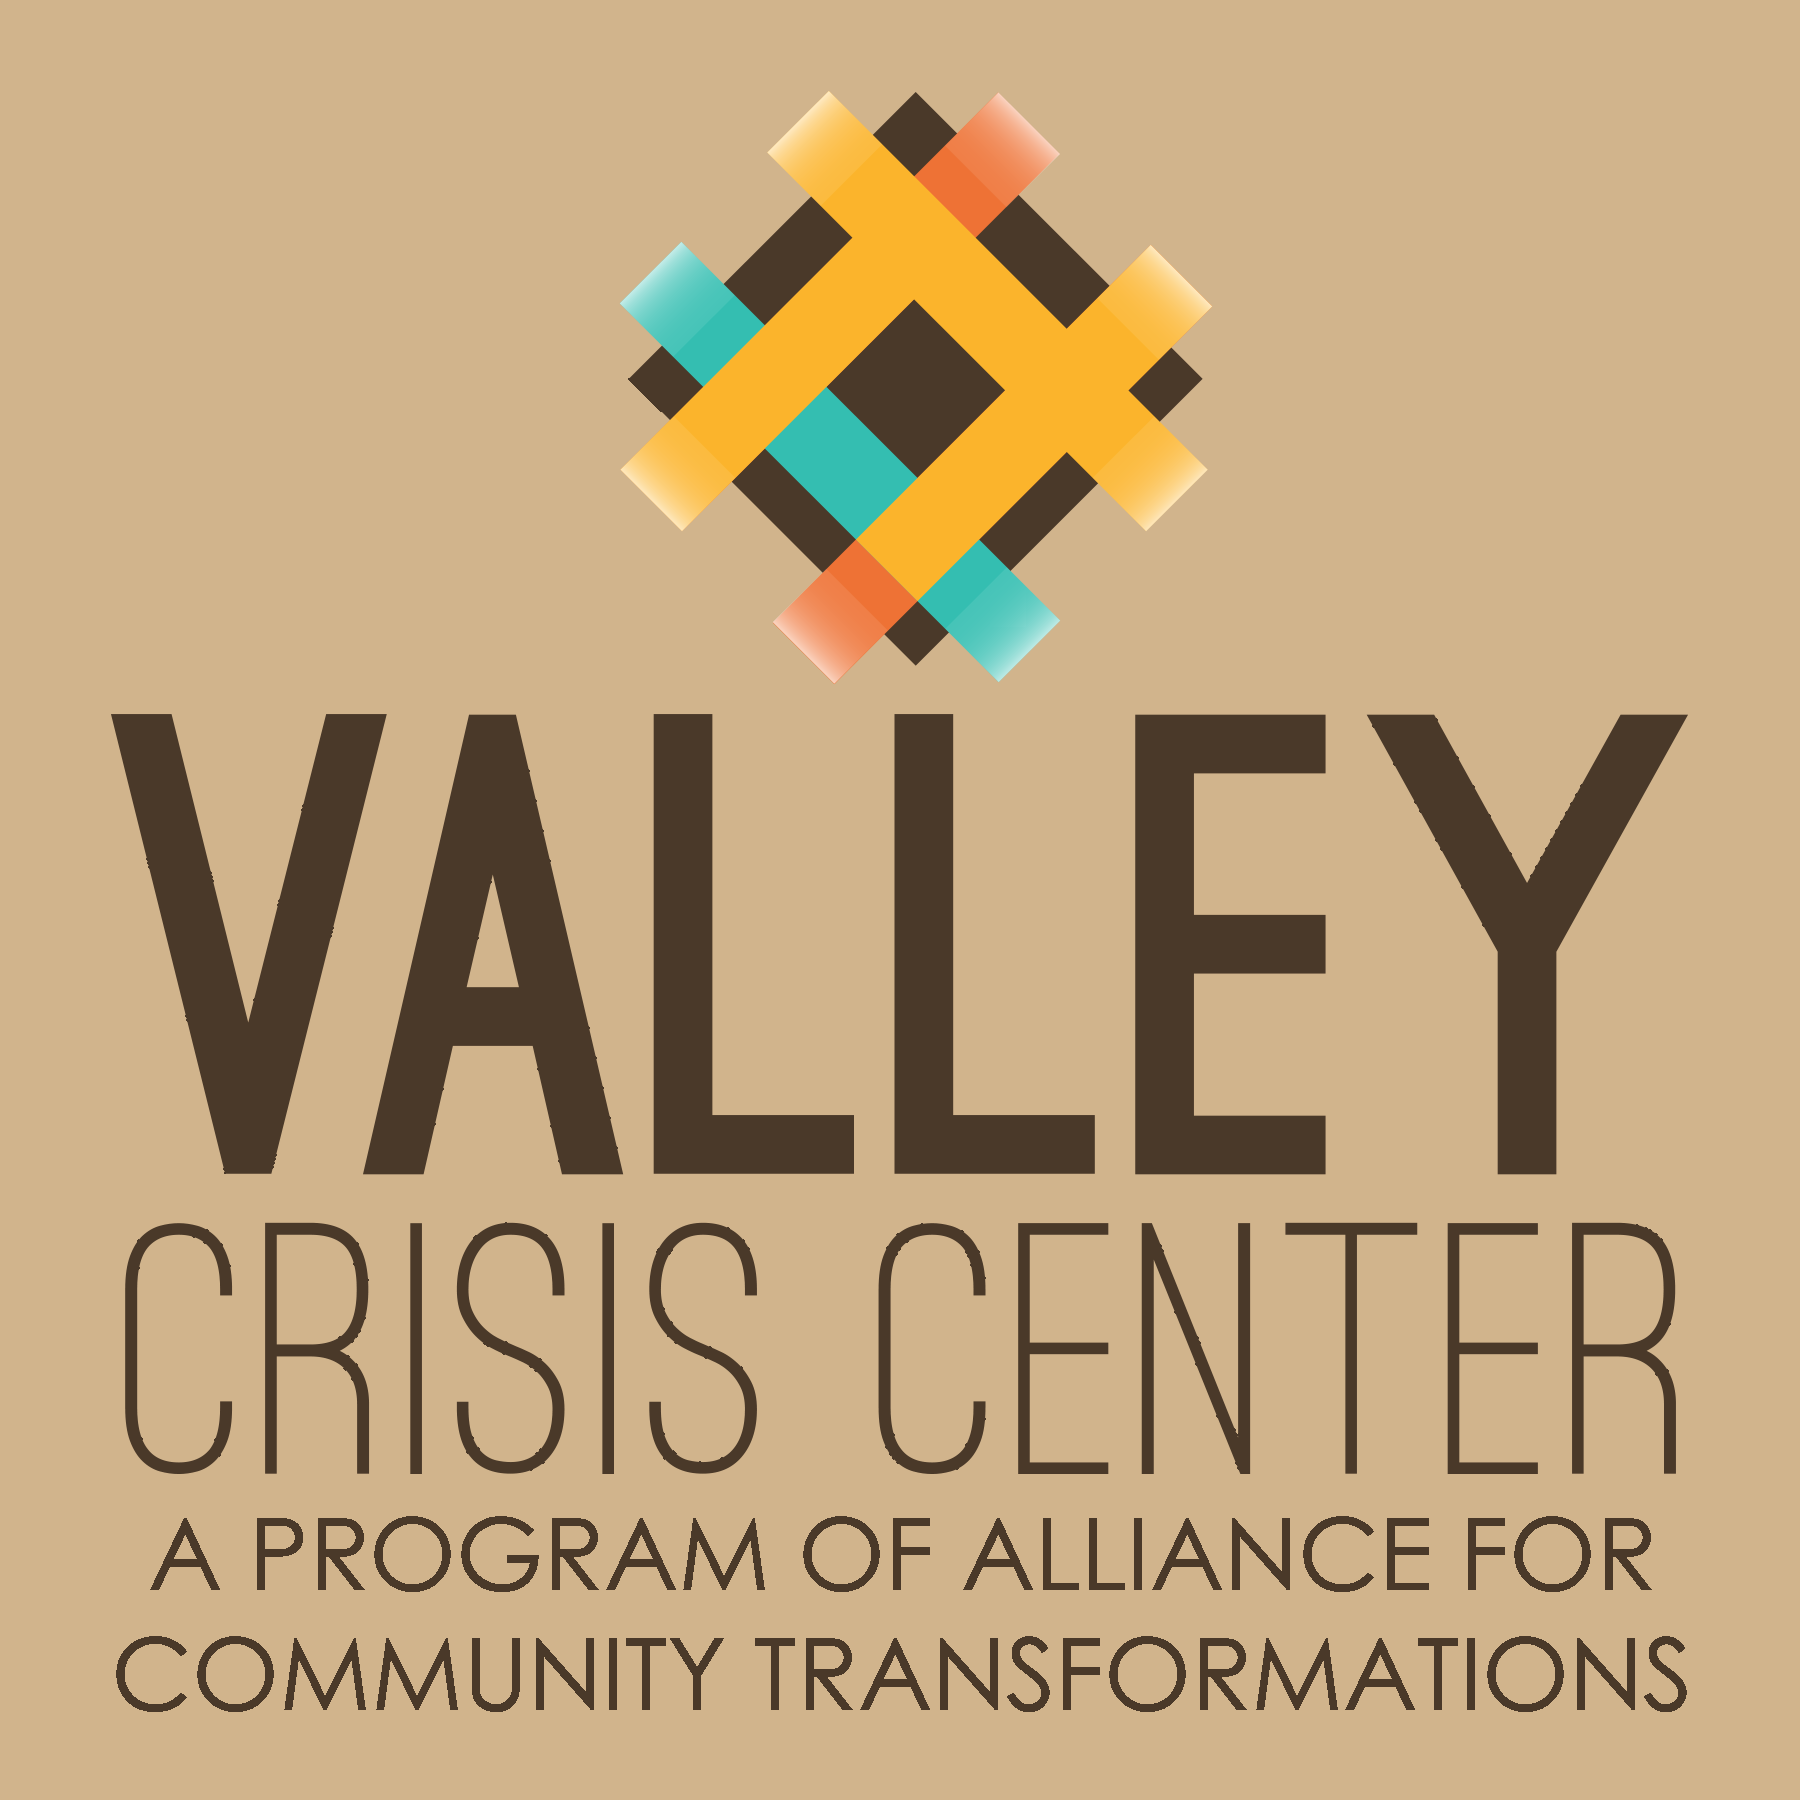 ALLIANCE FOR COMMUNITY TRANSFORMATIONS' Photo